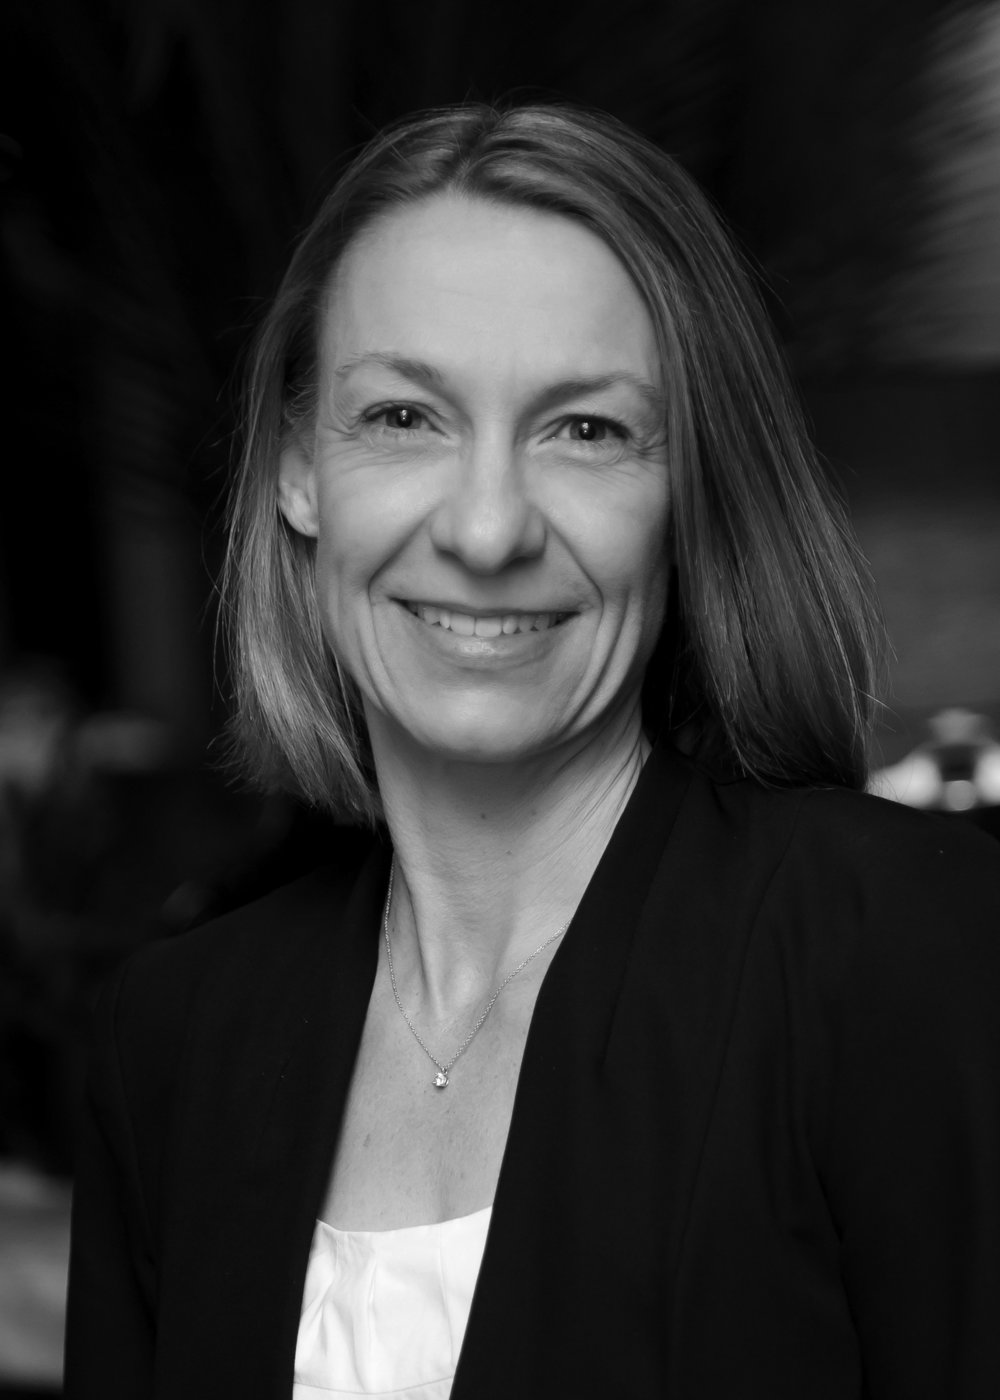 Philippa Jameson - General Manager